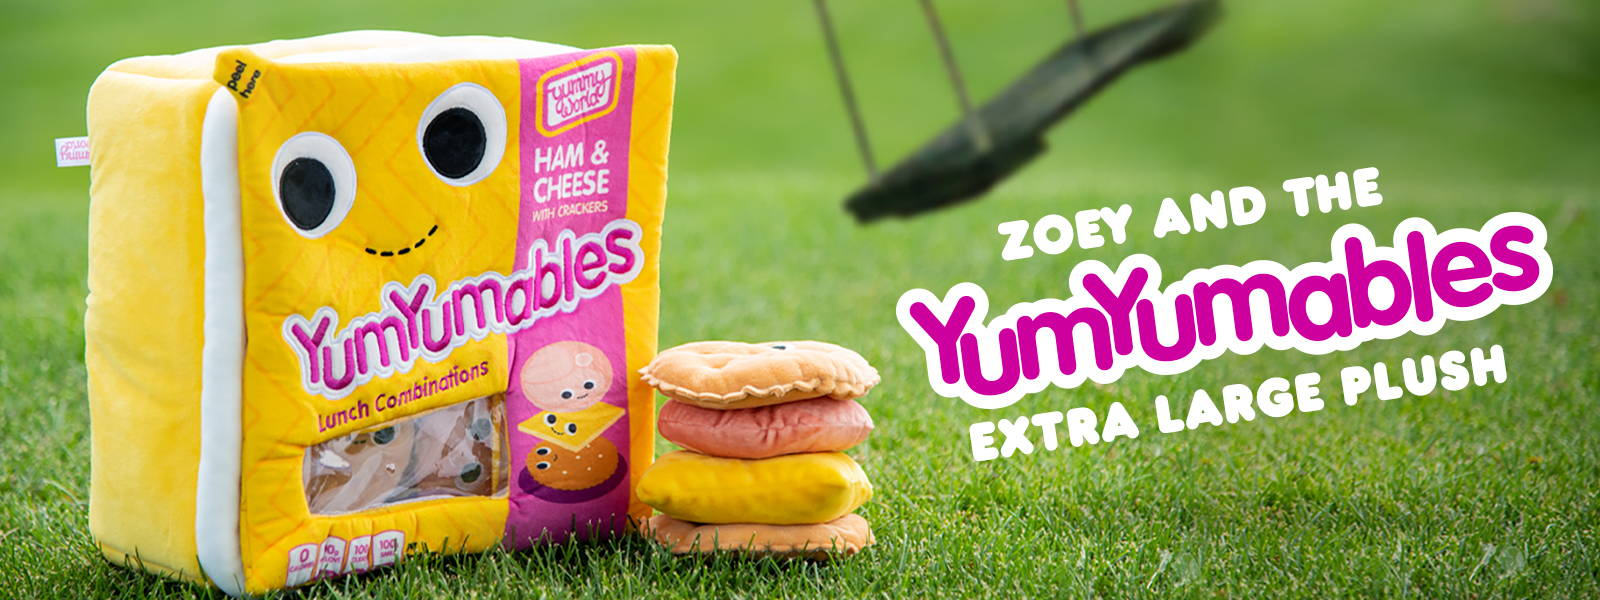 Yummy World YumYumables Lunchable Plush Stuffed Toy